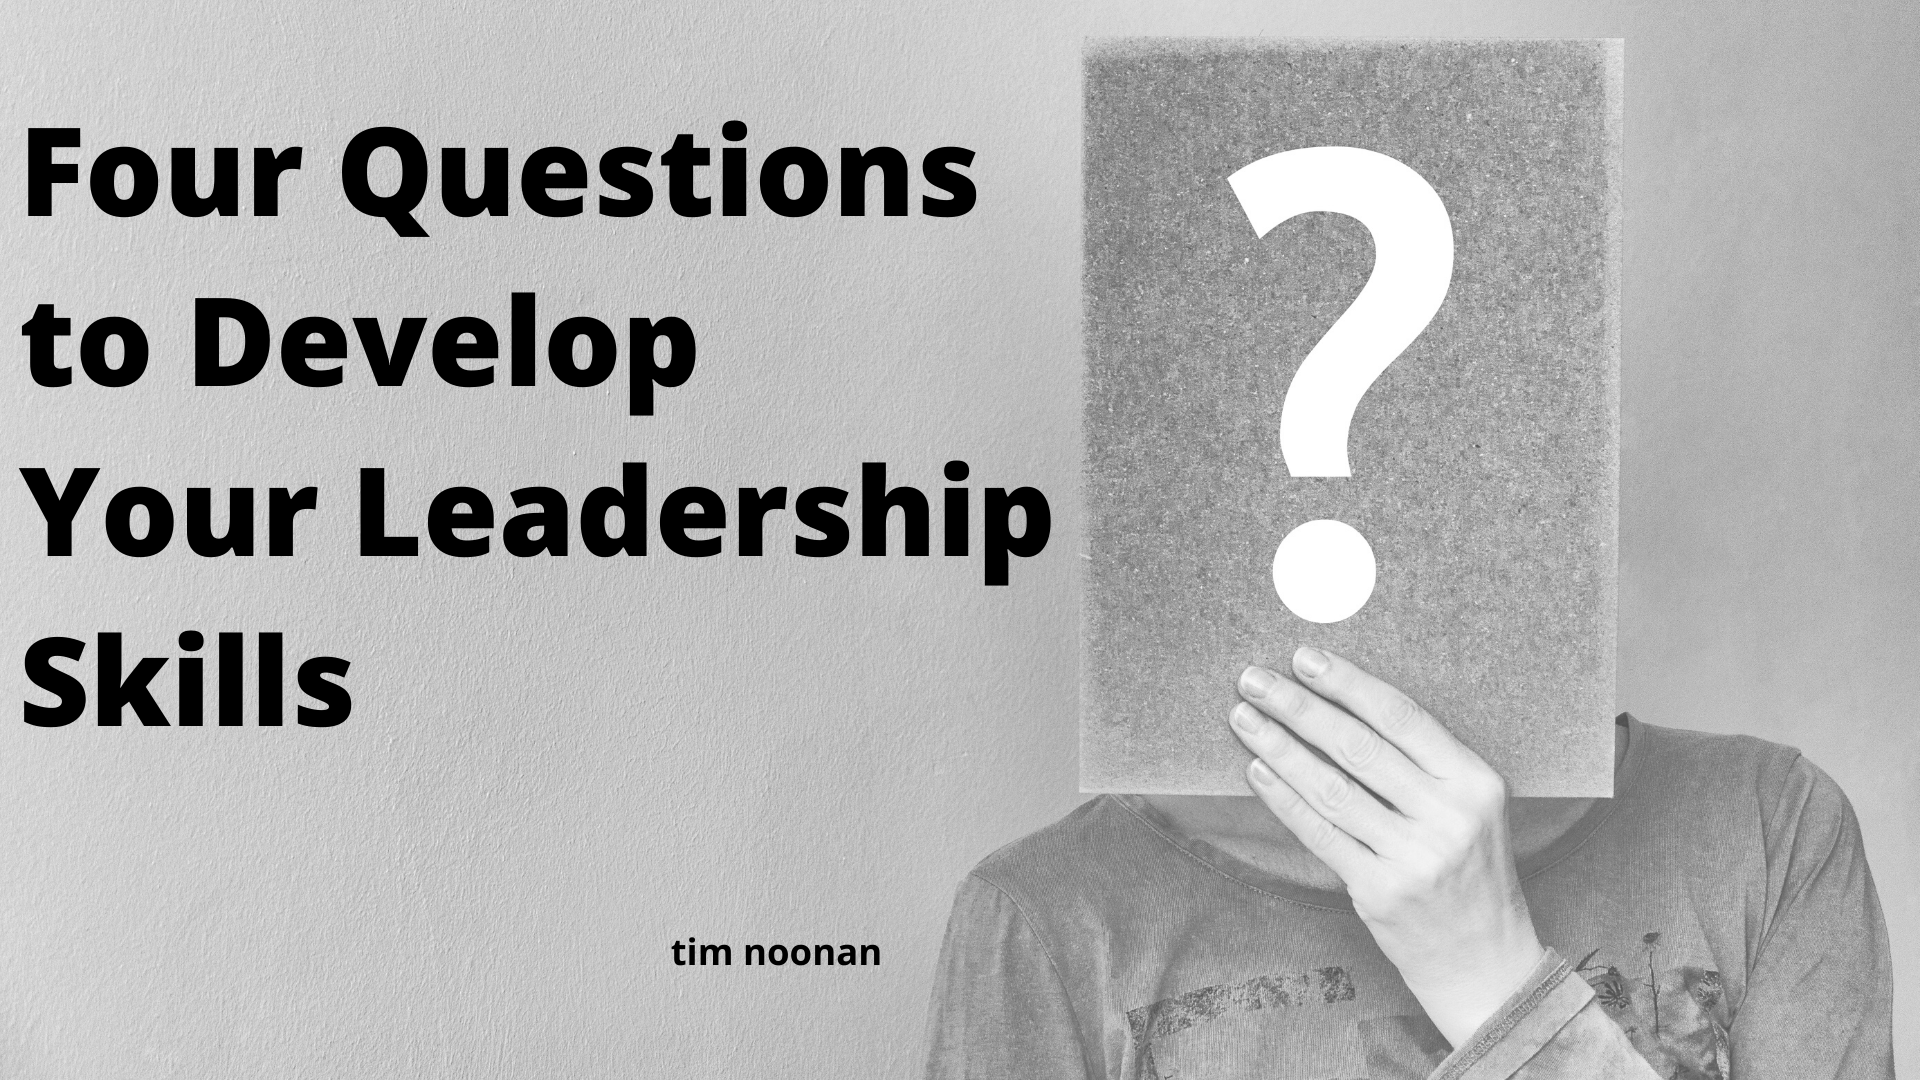 Four Questions to Develop Your Leadership Skills by Tim Noonan